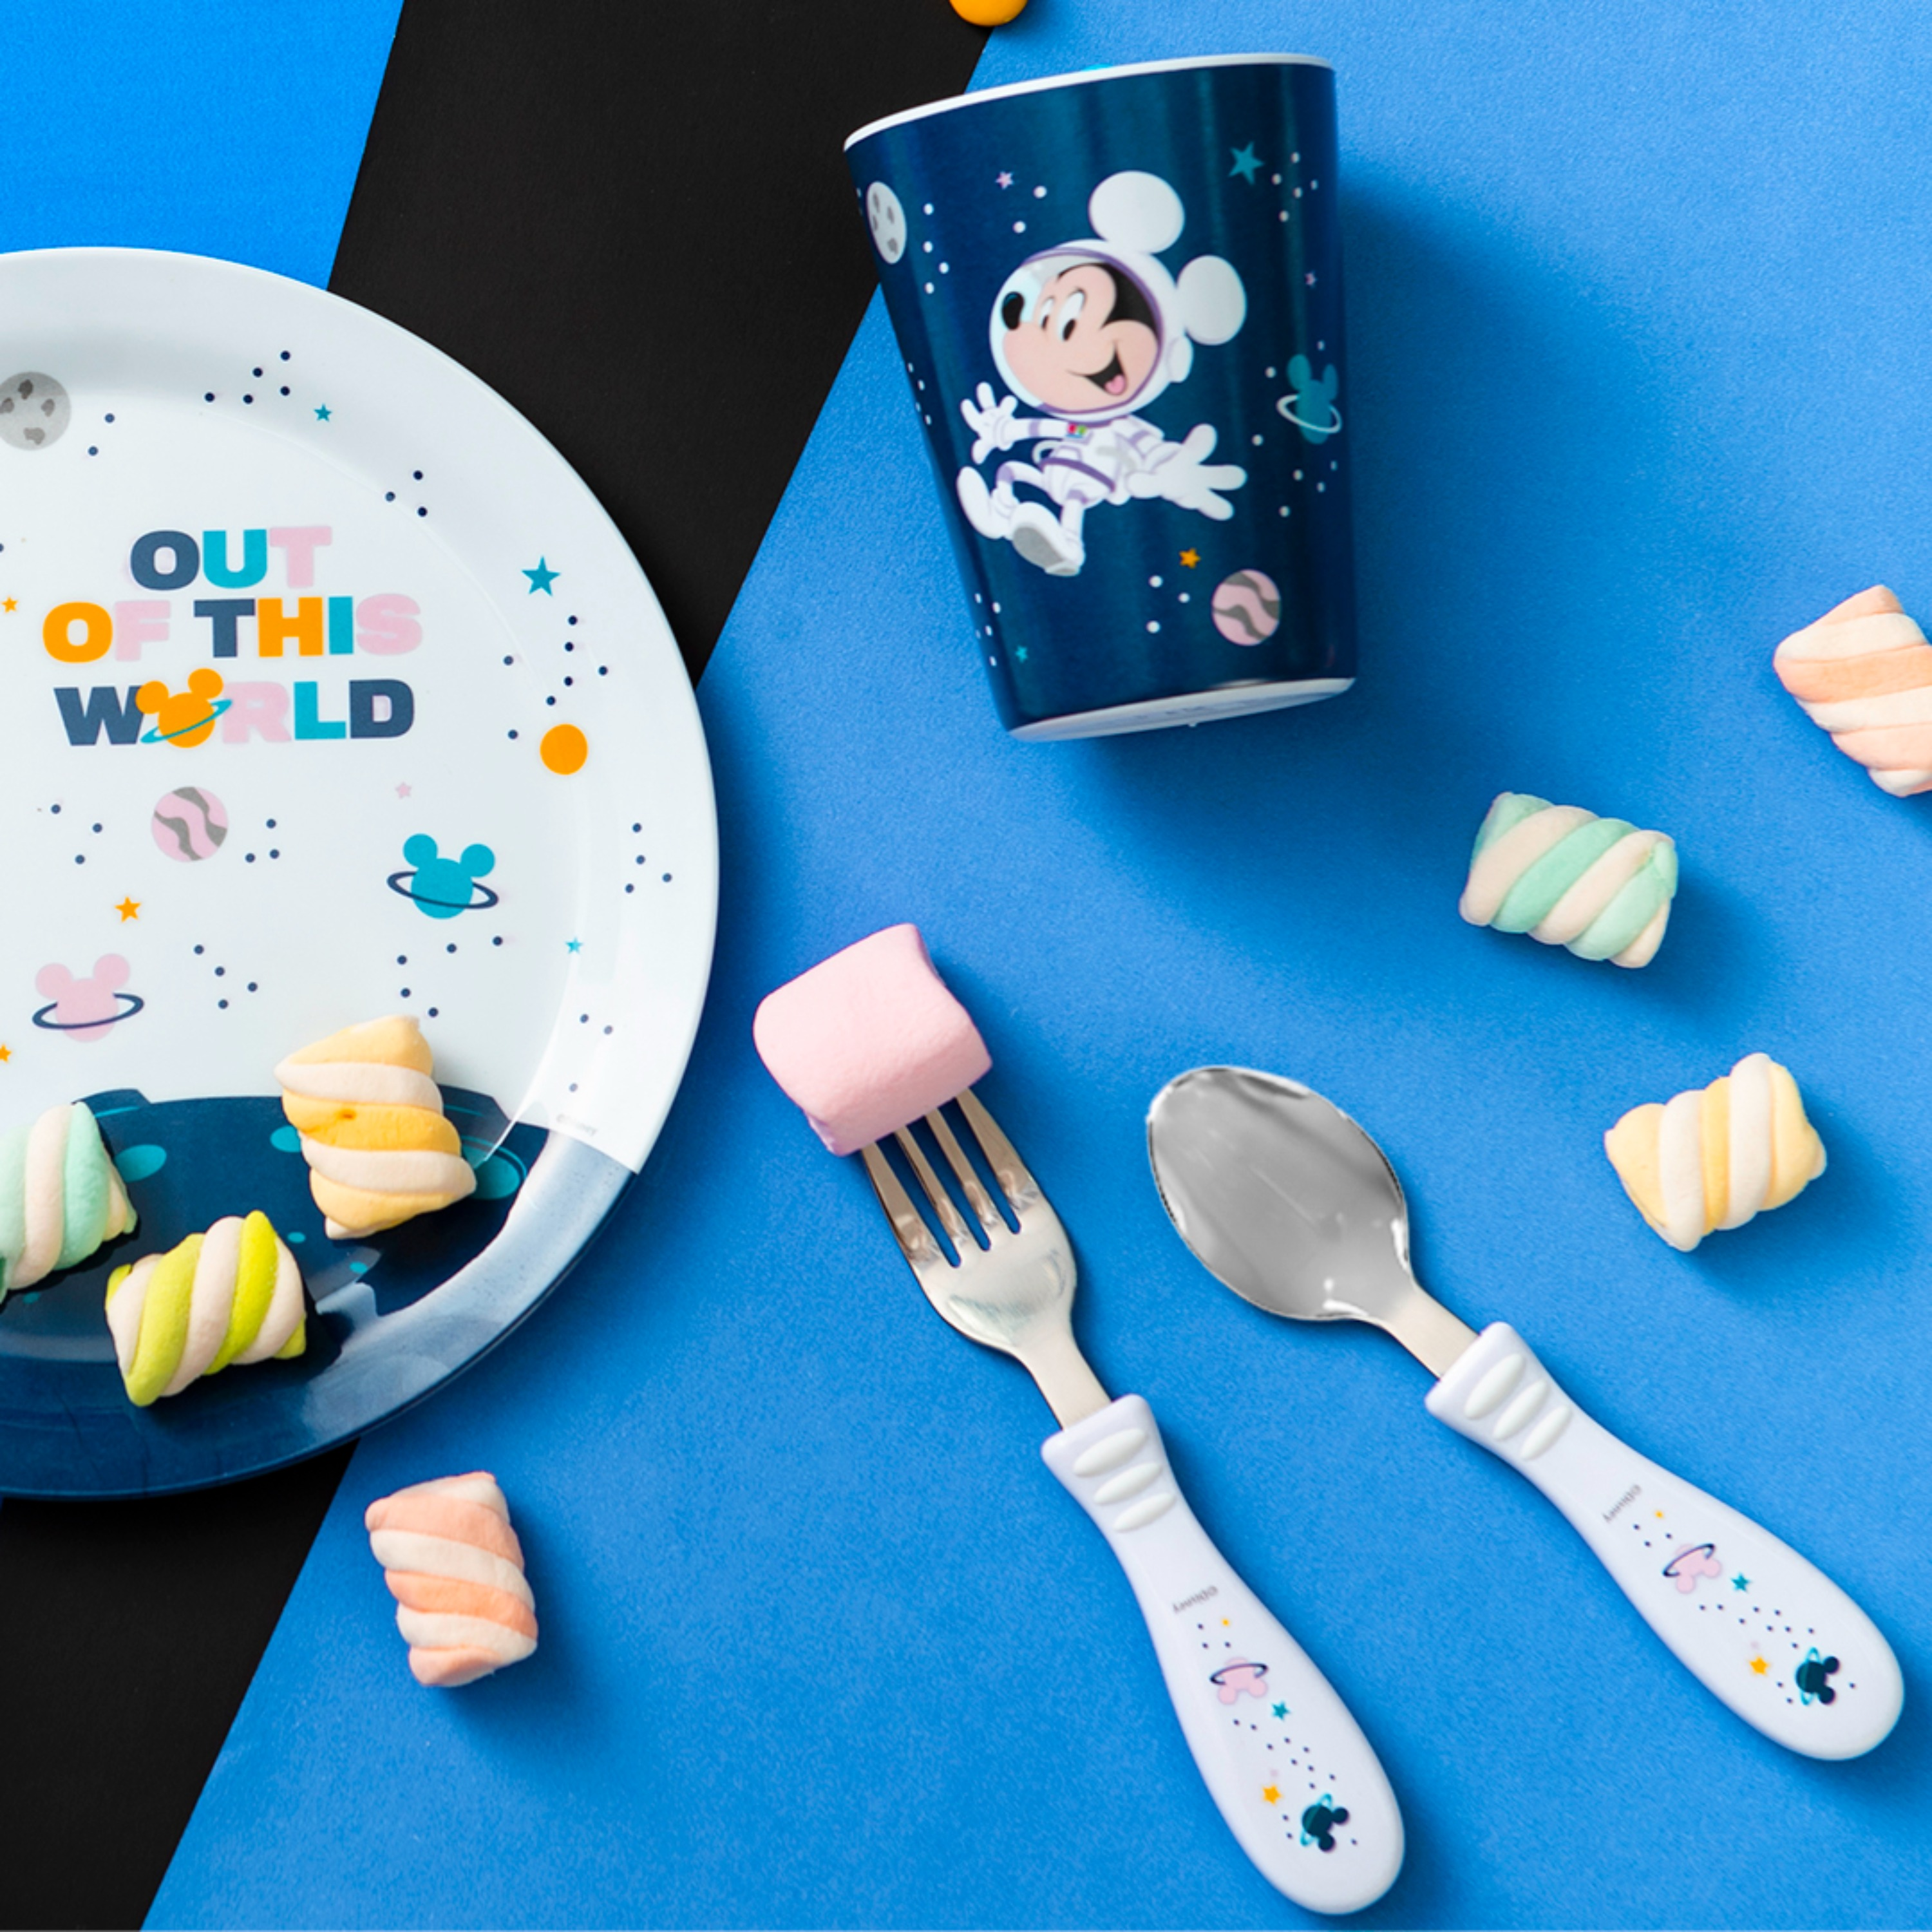 Disney Plate, Bowl, Tumbler and Flatware Set, Outer Space Mickey Mouse, 5-piece set slideshow image 2